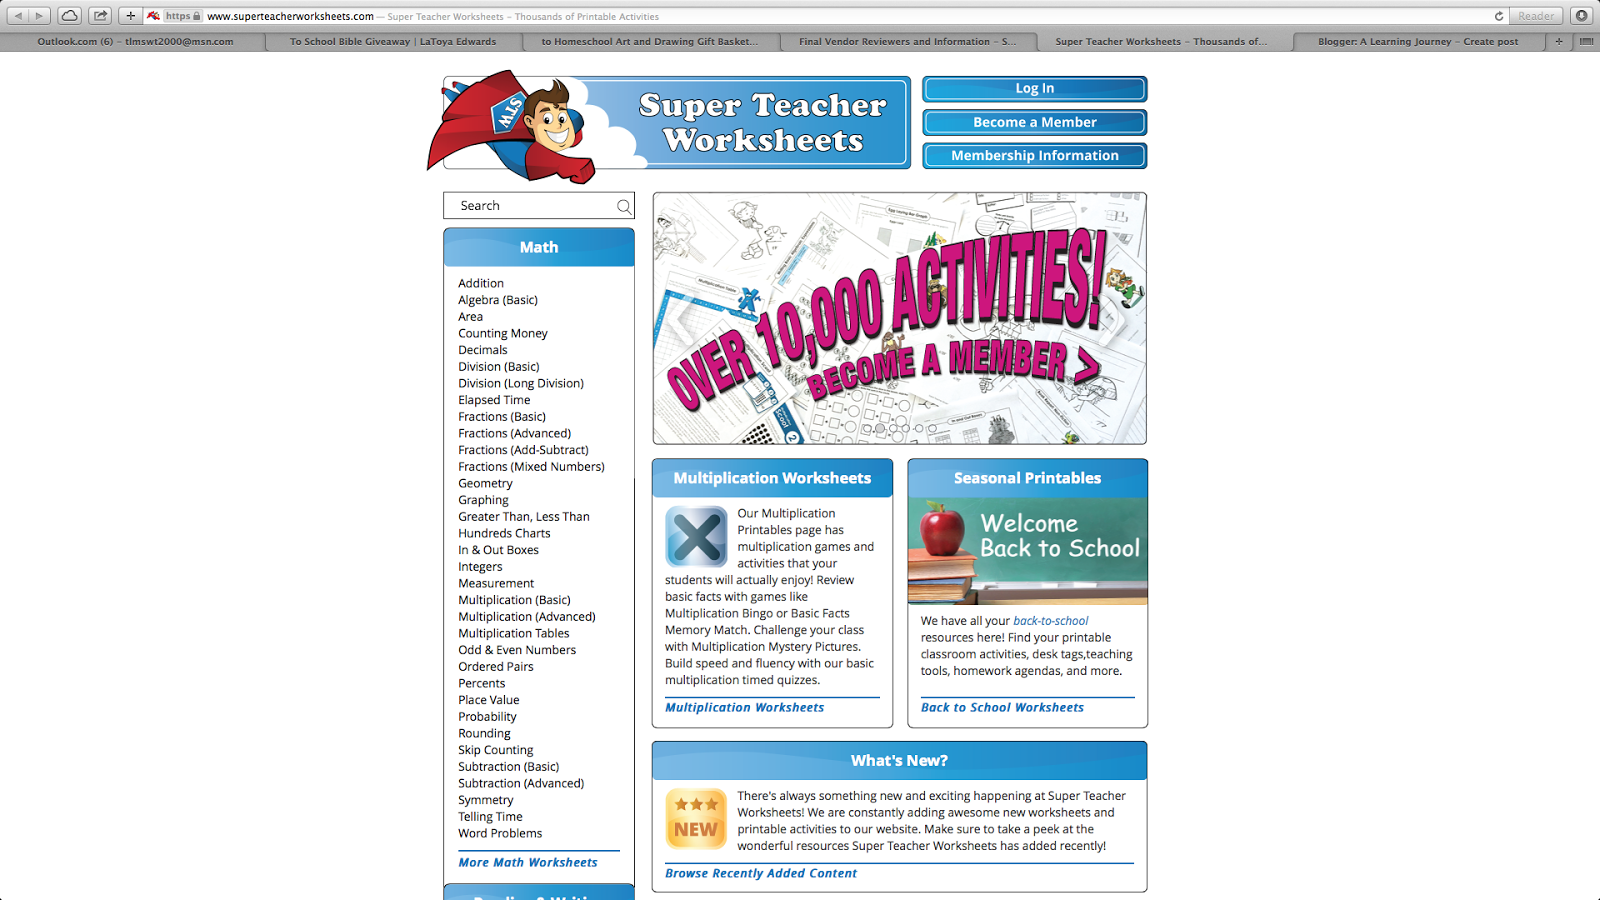 Worksheets Super Teacher Worksheet Password a learning journey tos review super teacher worksheets the website contains high quality printable pdf files and resources available online so youll need adobe reader an internet connection